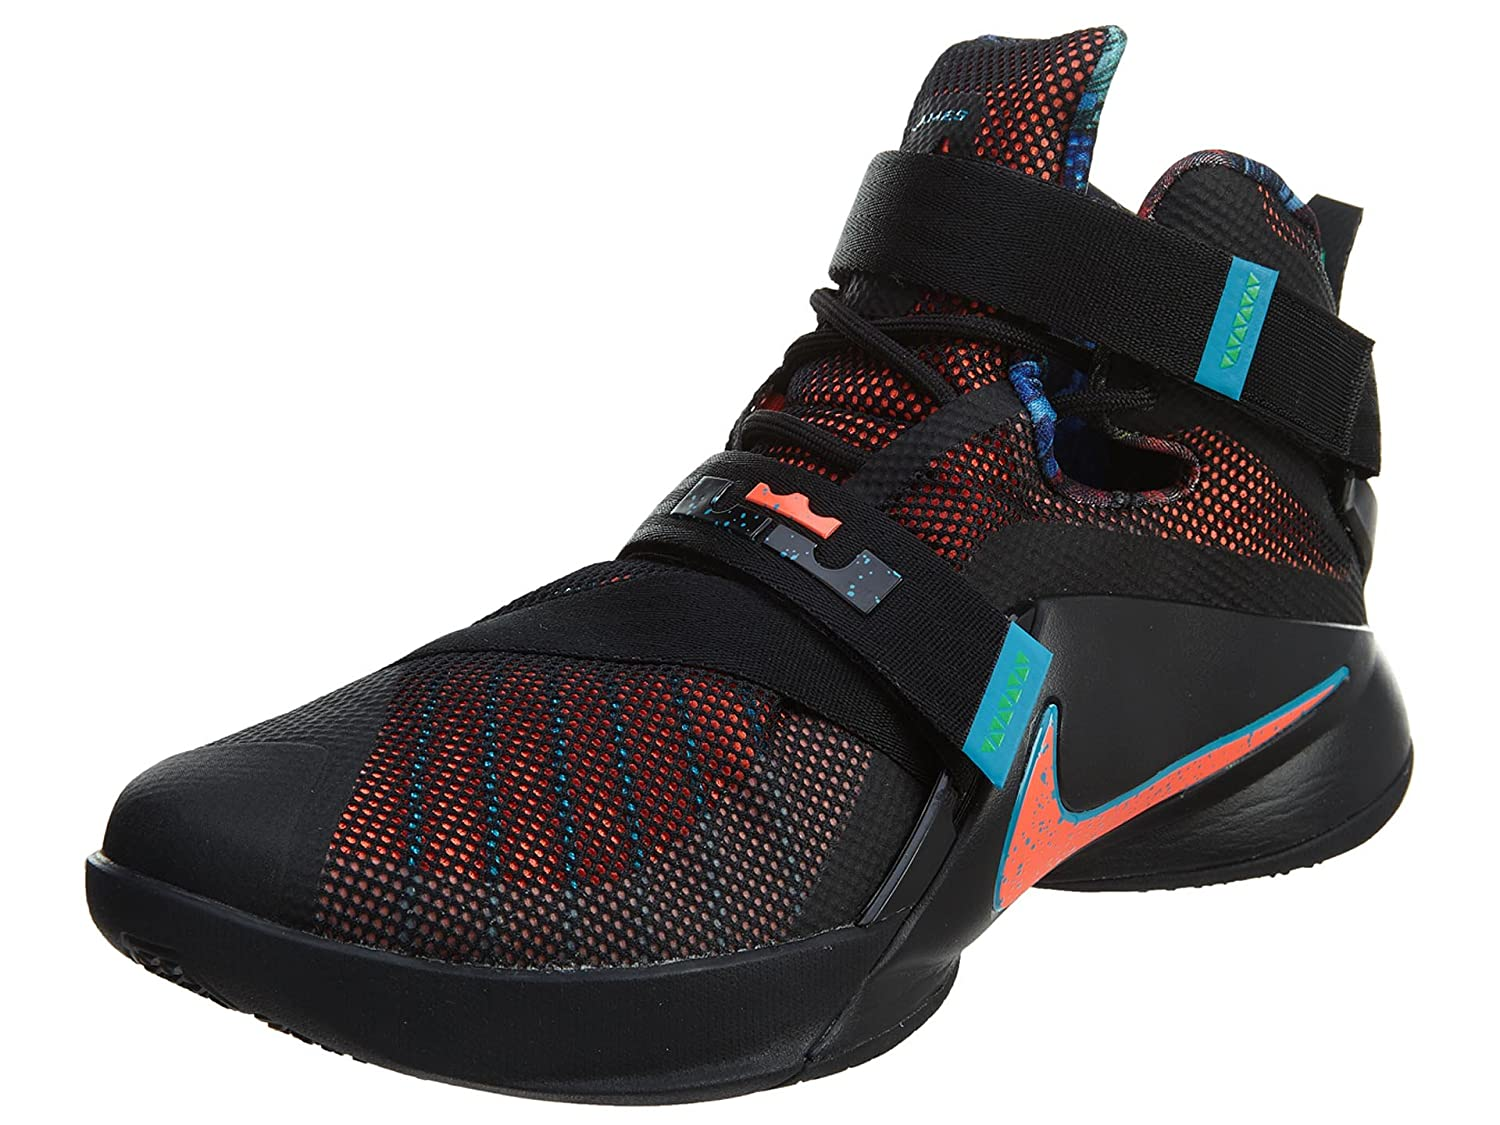 new styles d8932 99c86 Amazon.com   NIKE Lebron Soldier IX Mens Basketball-Shoes 749417-084 11.5 -  Black Blue Lagoon Green Shock Hyper Orange   Basketball